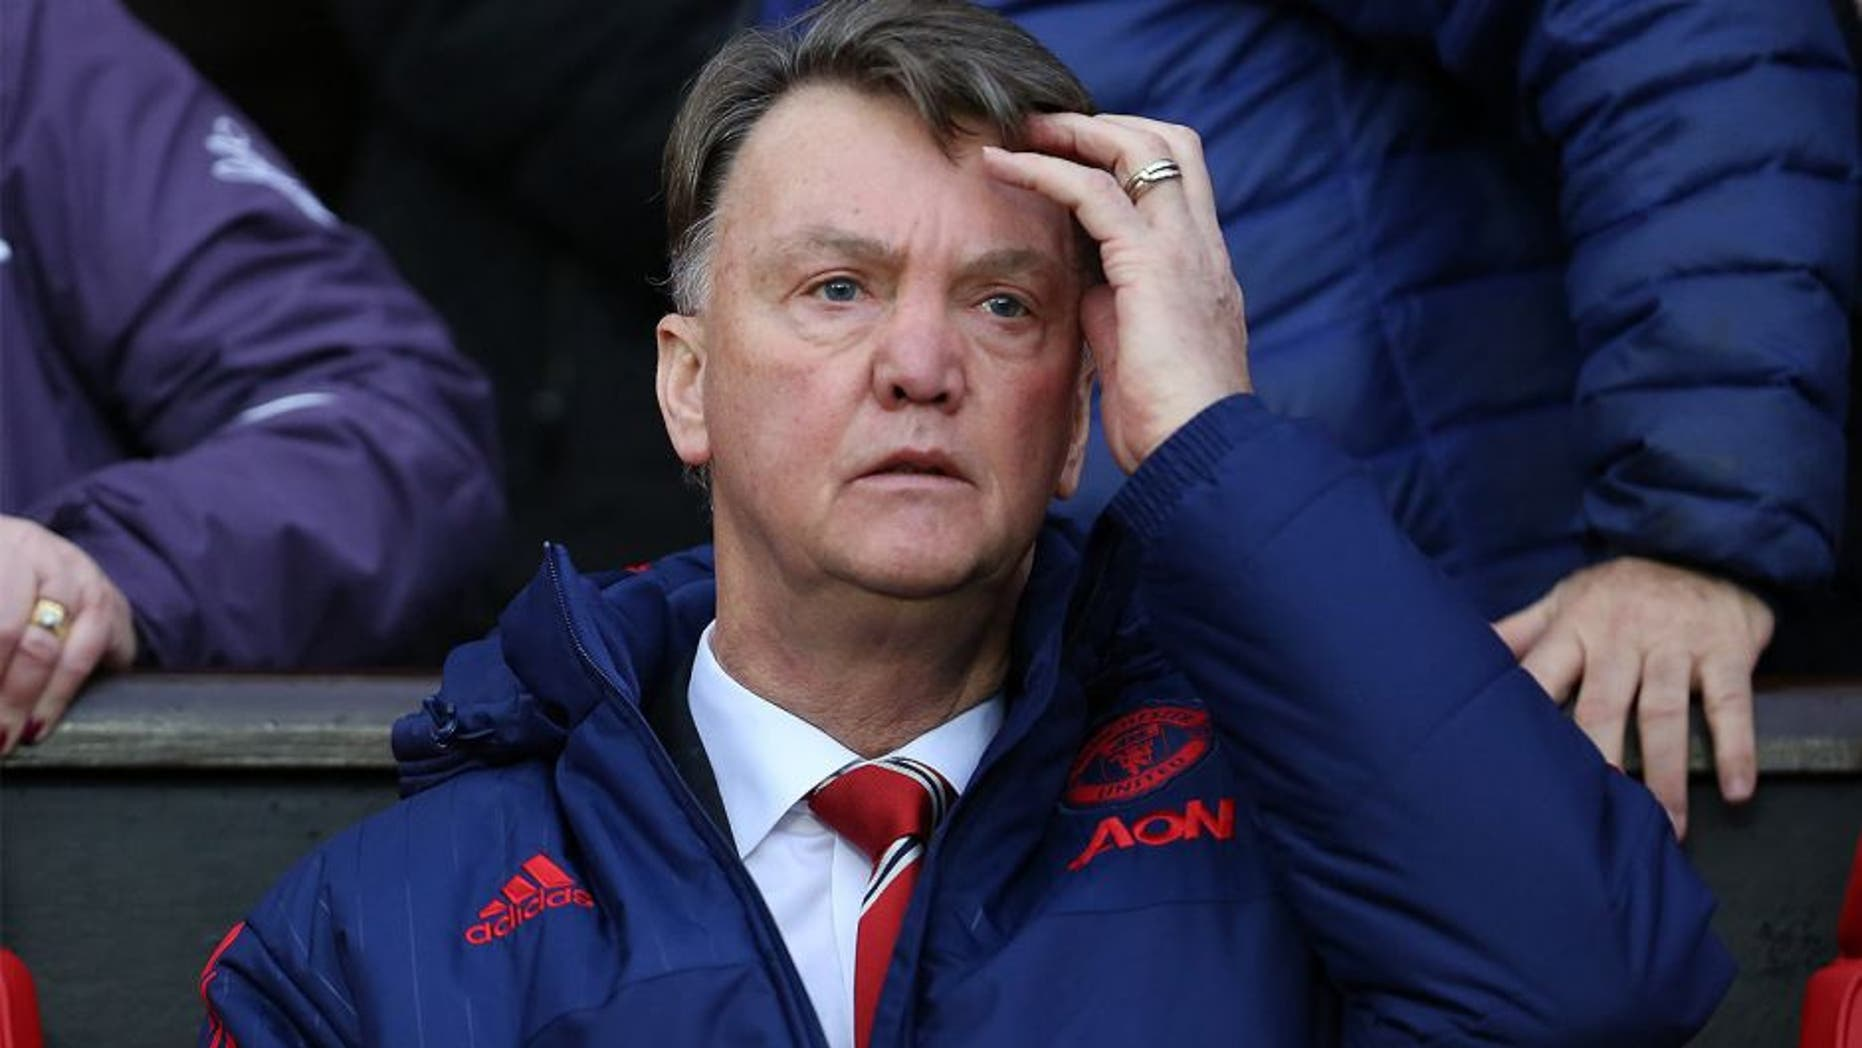 MANCHESTER, ENGLAND - JANUARY 02: Louis van Gaal manager of Manchester United during the Barclays Premier League match between Manchester United and Swansea City at Old Trafford on January 2, 2016 in Manchester, England. (Photo by James Baylis - AMA/Getty Images)